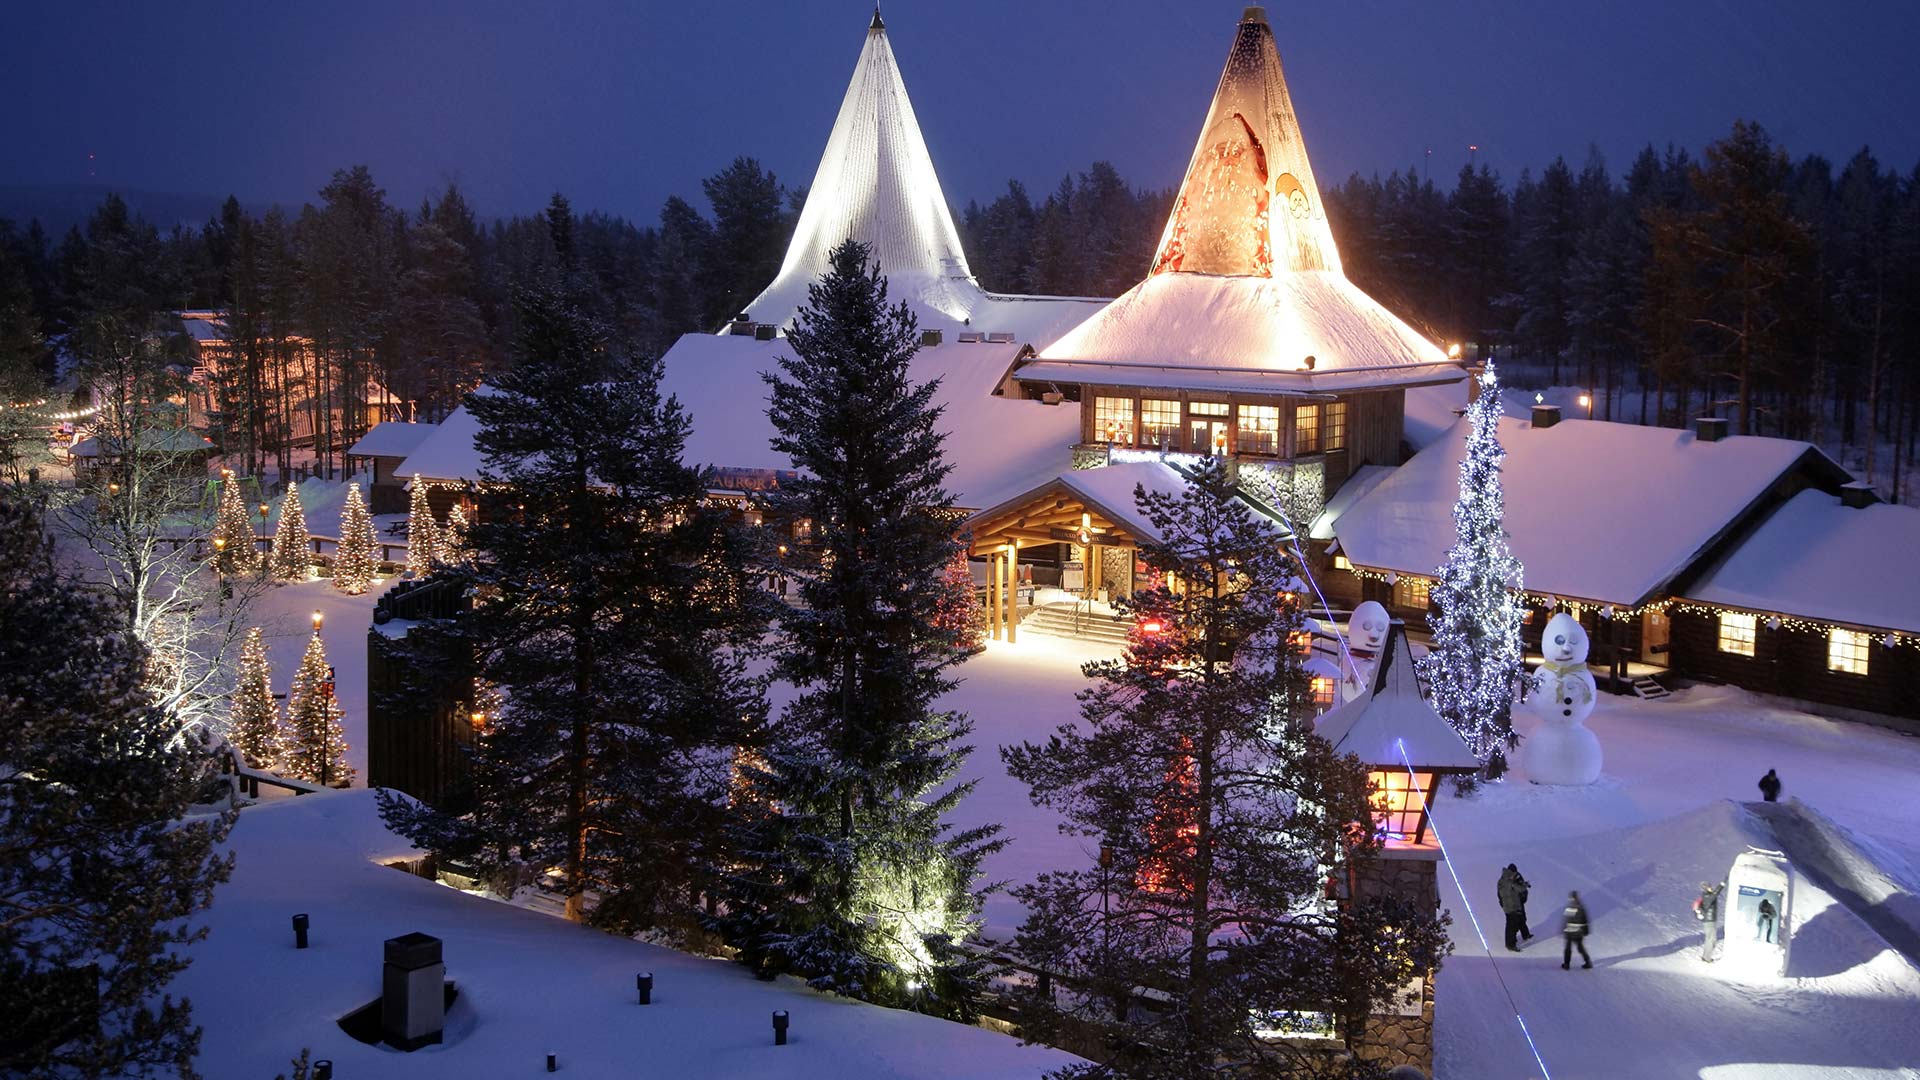 Snow covered building and Christmas trees in Santa Claus Village